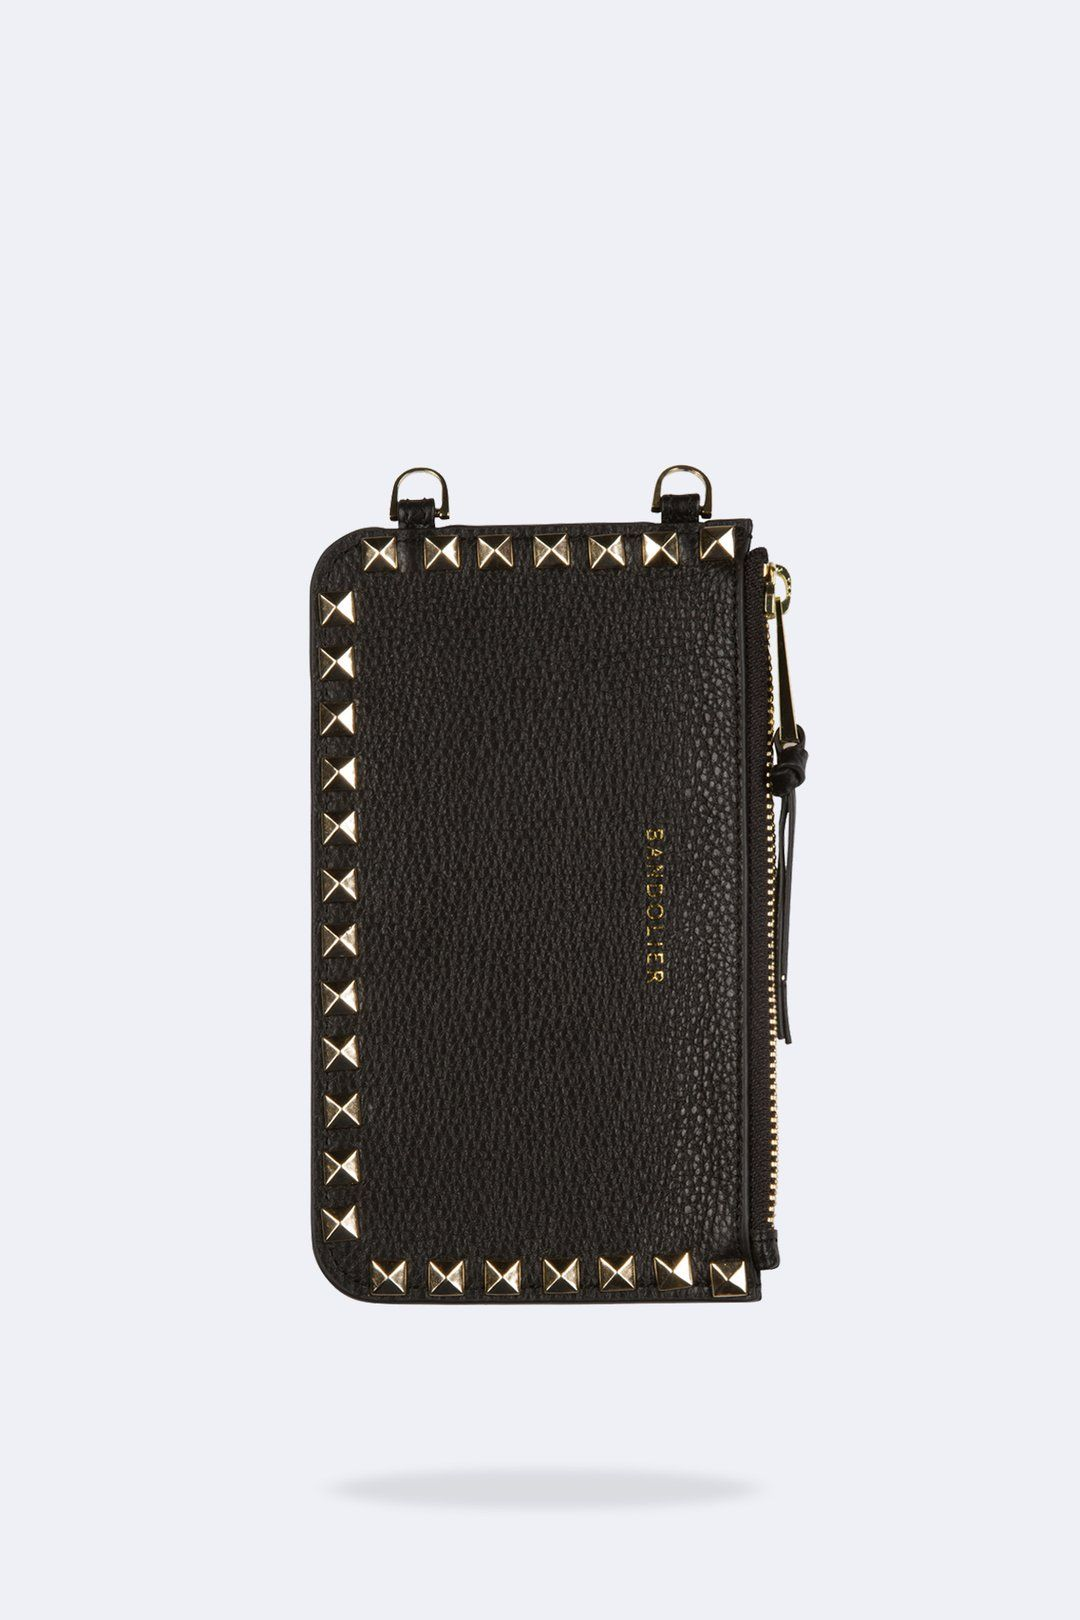 af3f35fb5ece Pebble Leather Pyramid Stud Zip Pouch - Black/Gold Ring Designs, Coin Purse,